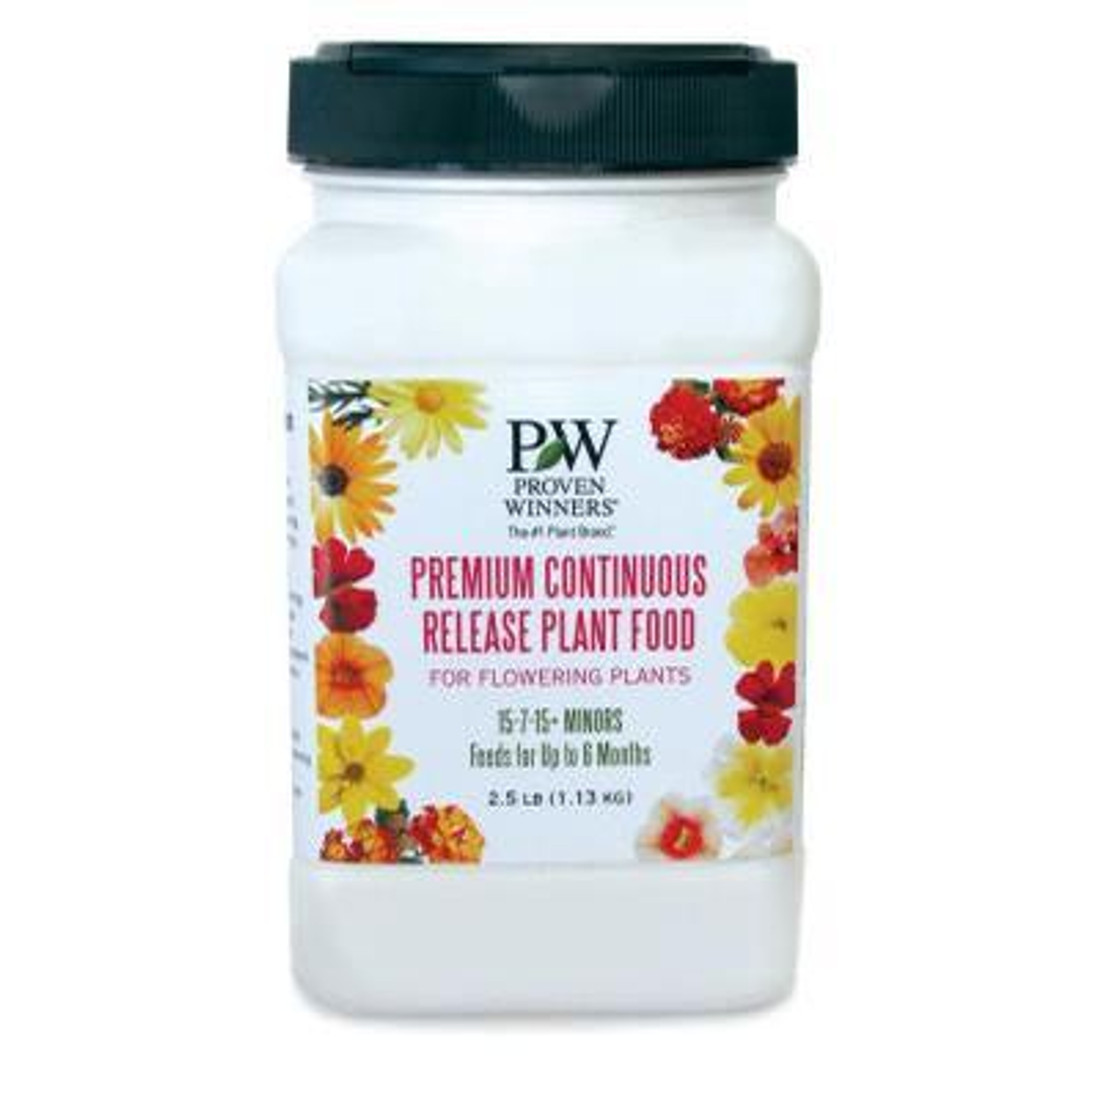 Proven Winners Premium Continuous Release Plant Food